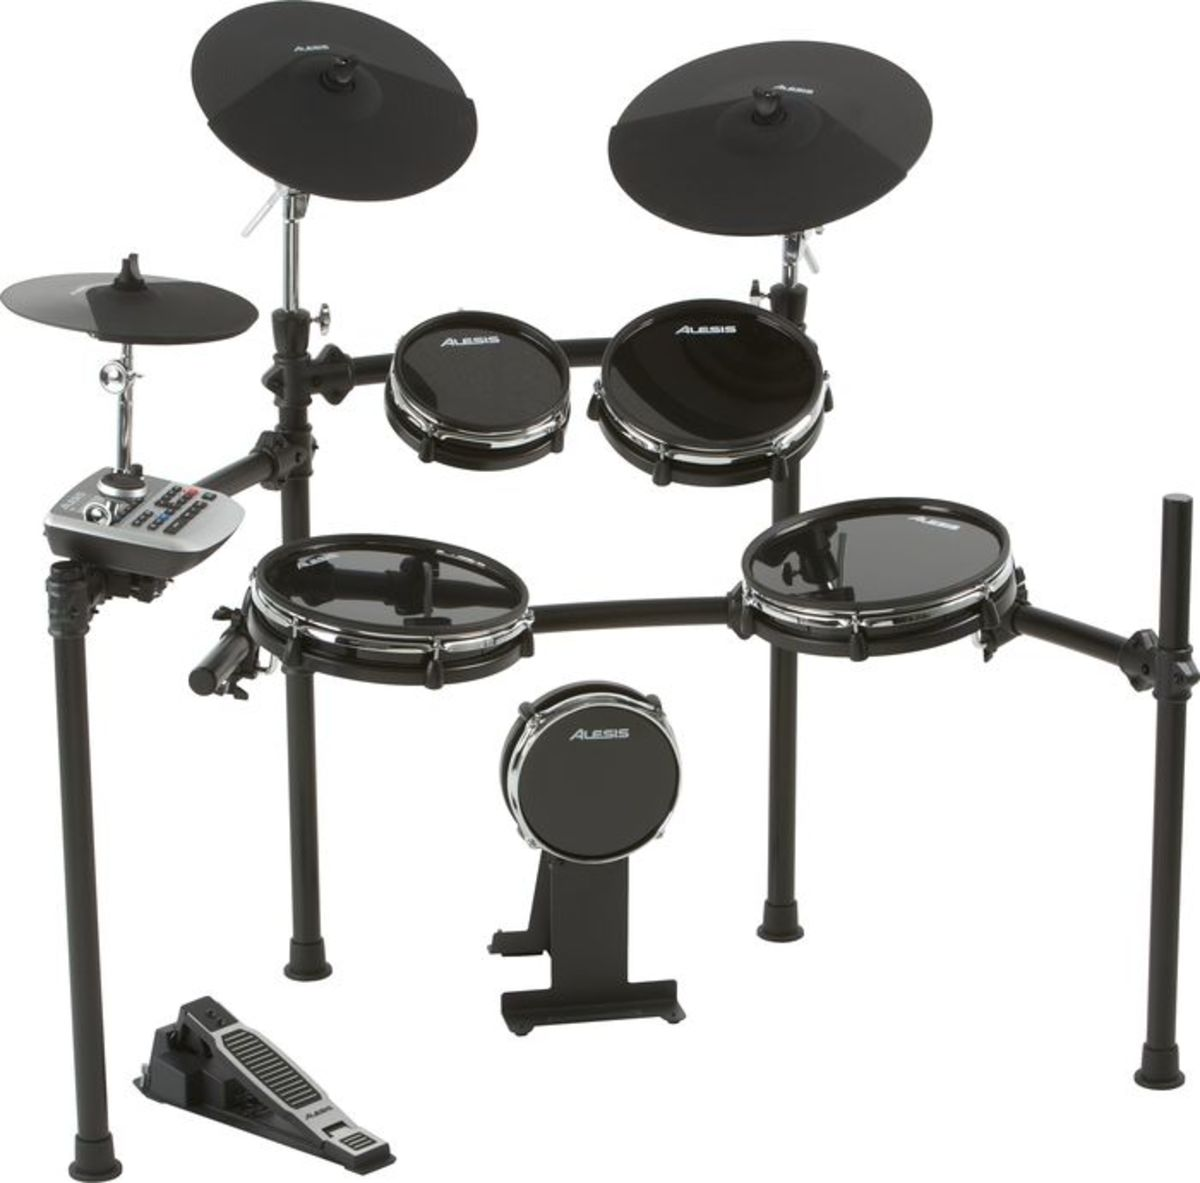 4 Great Electronic Drum Sets for Kids and Beginners   Spinditty